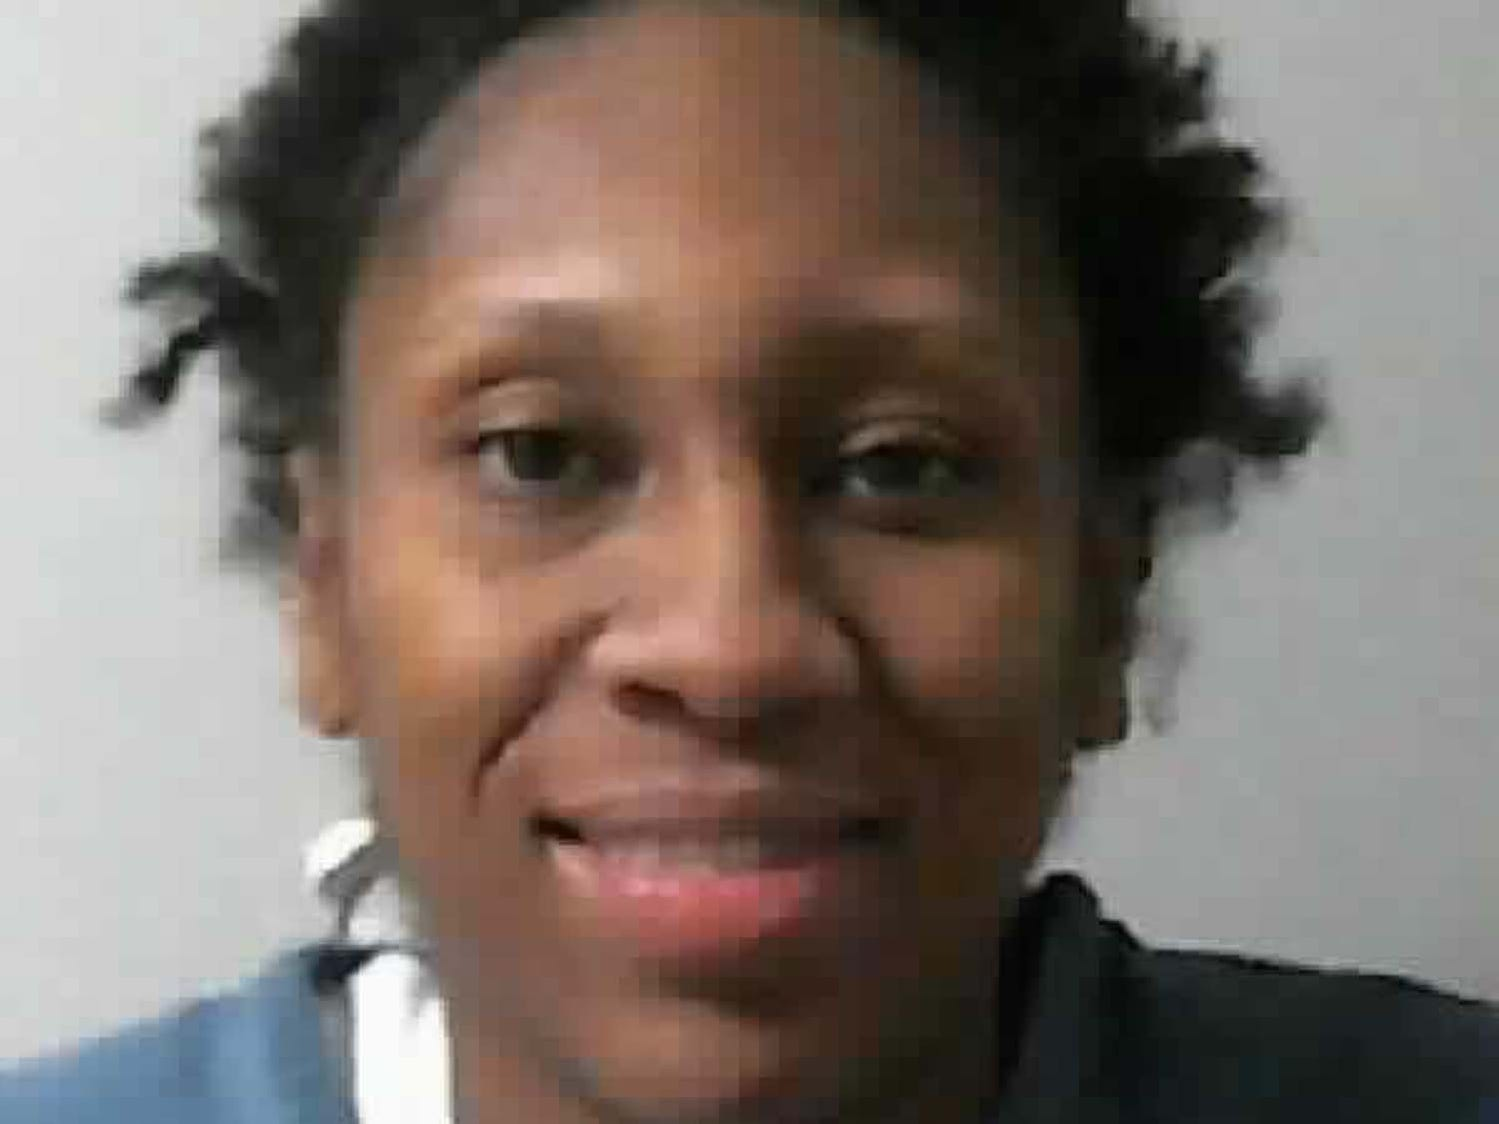 "Monica Dawson, 35, is wanted by the Nevada Department of Corrections for escaping from Casa Grande Transitional Housing center in Las Vegas. She was serving time for burglary and grand larceny of a vehicle in Clark County. She is 5 feet 7 inches tall, weighs 135 pounds and has black hair and brown eyes. She also has several tattoos, including the name ""Evans"" on the right side of her neck. She also has the phrase ""Junes girlfriend"" on tattooed on her right thigh. She has scars on her right shoulder and upper lip."